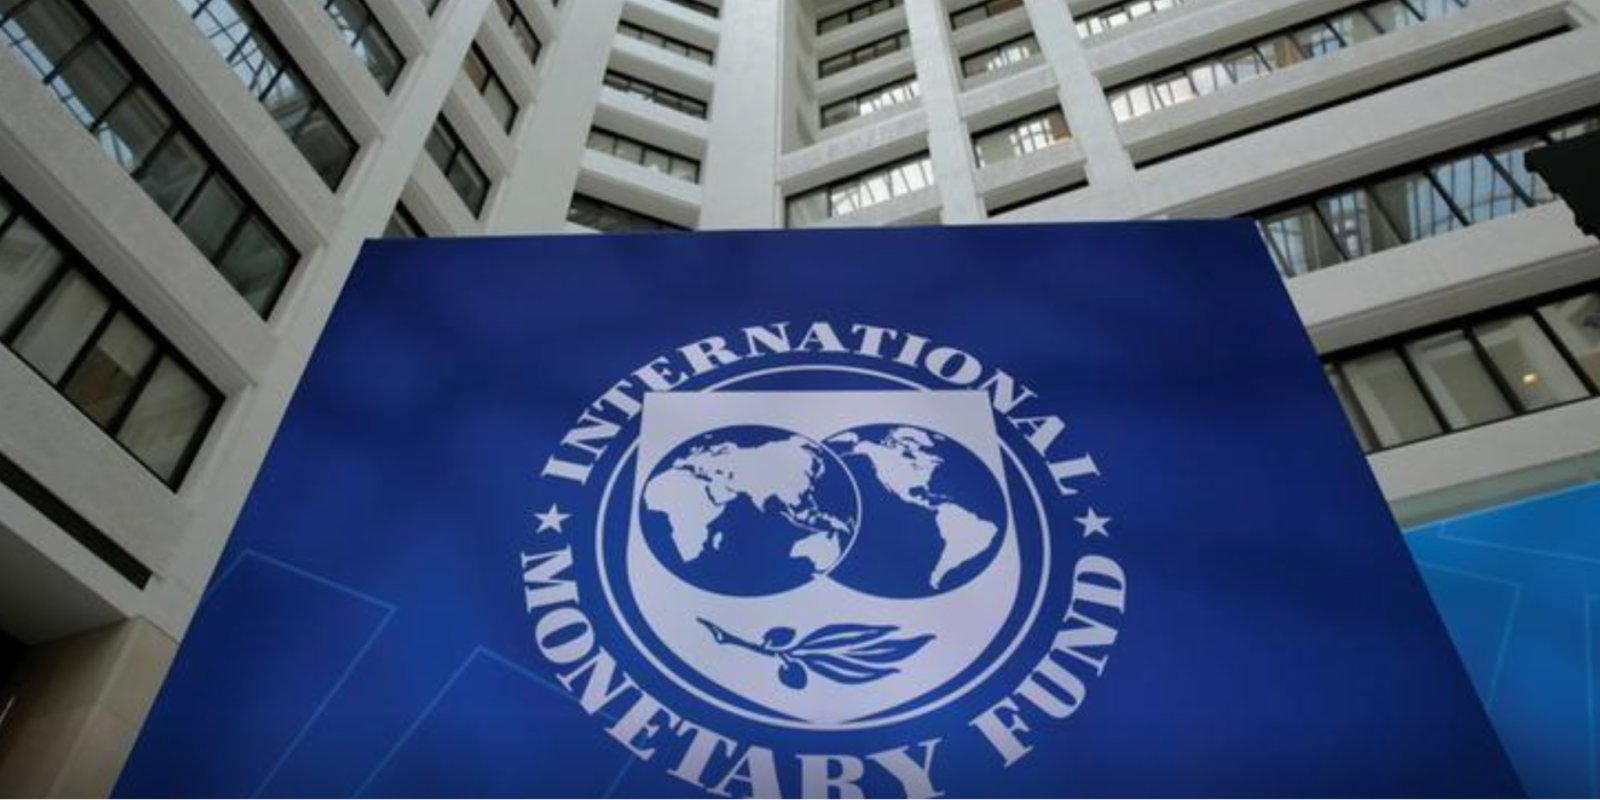 IMF projects China's economy to grow by 8.1% in 2021, 5.7% in 2022